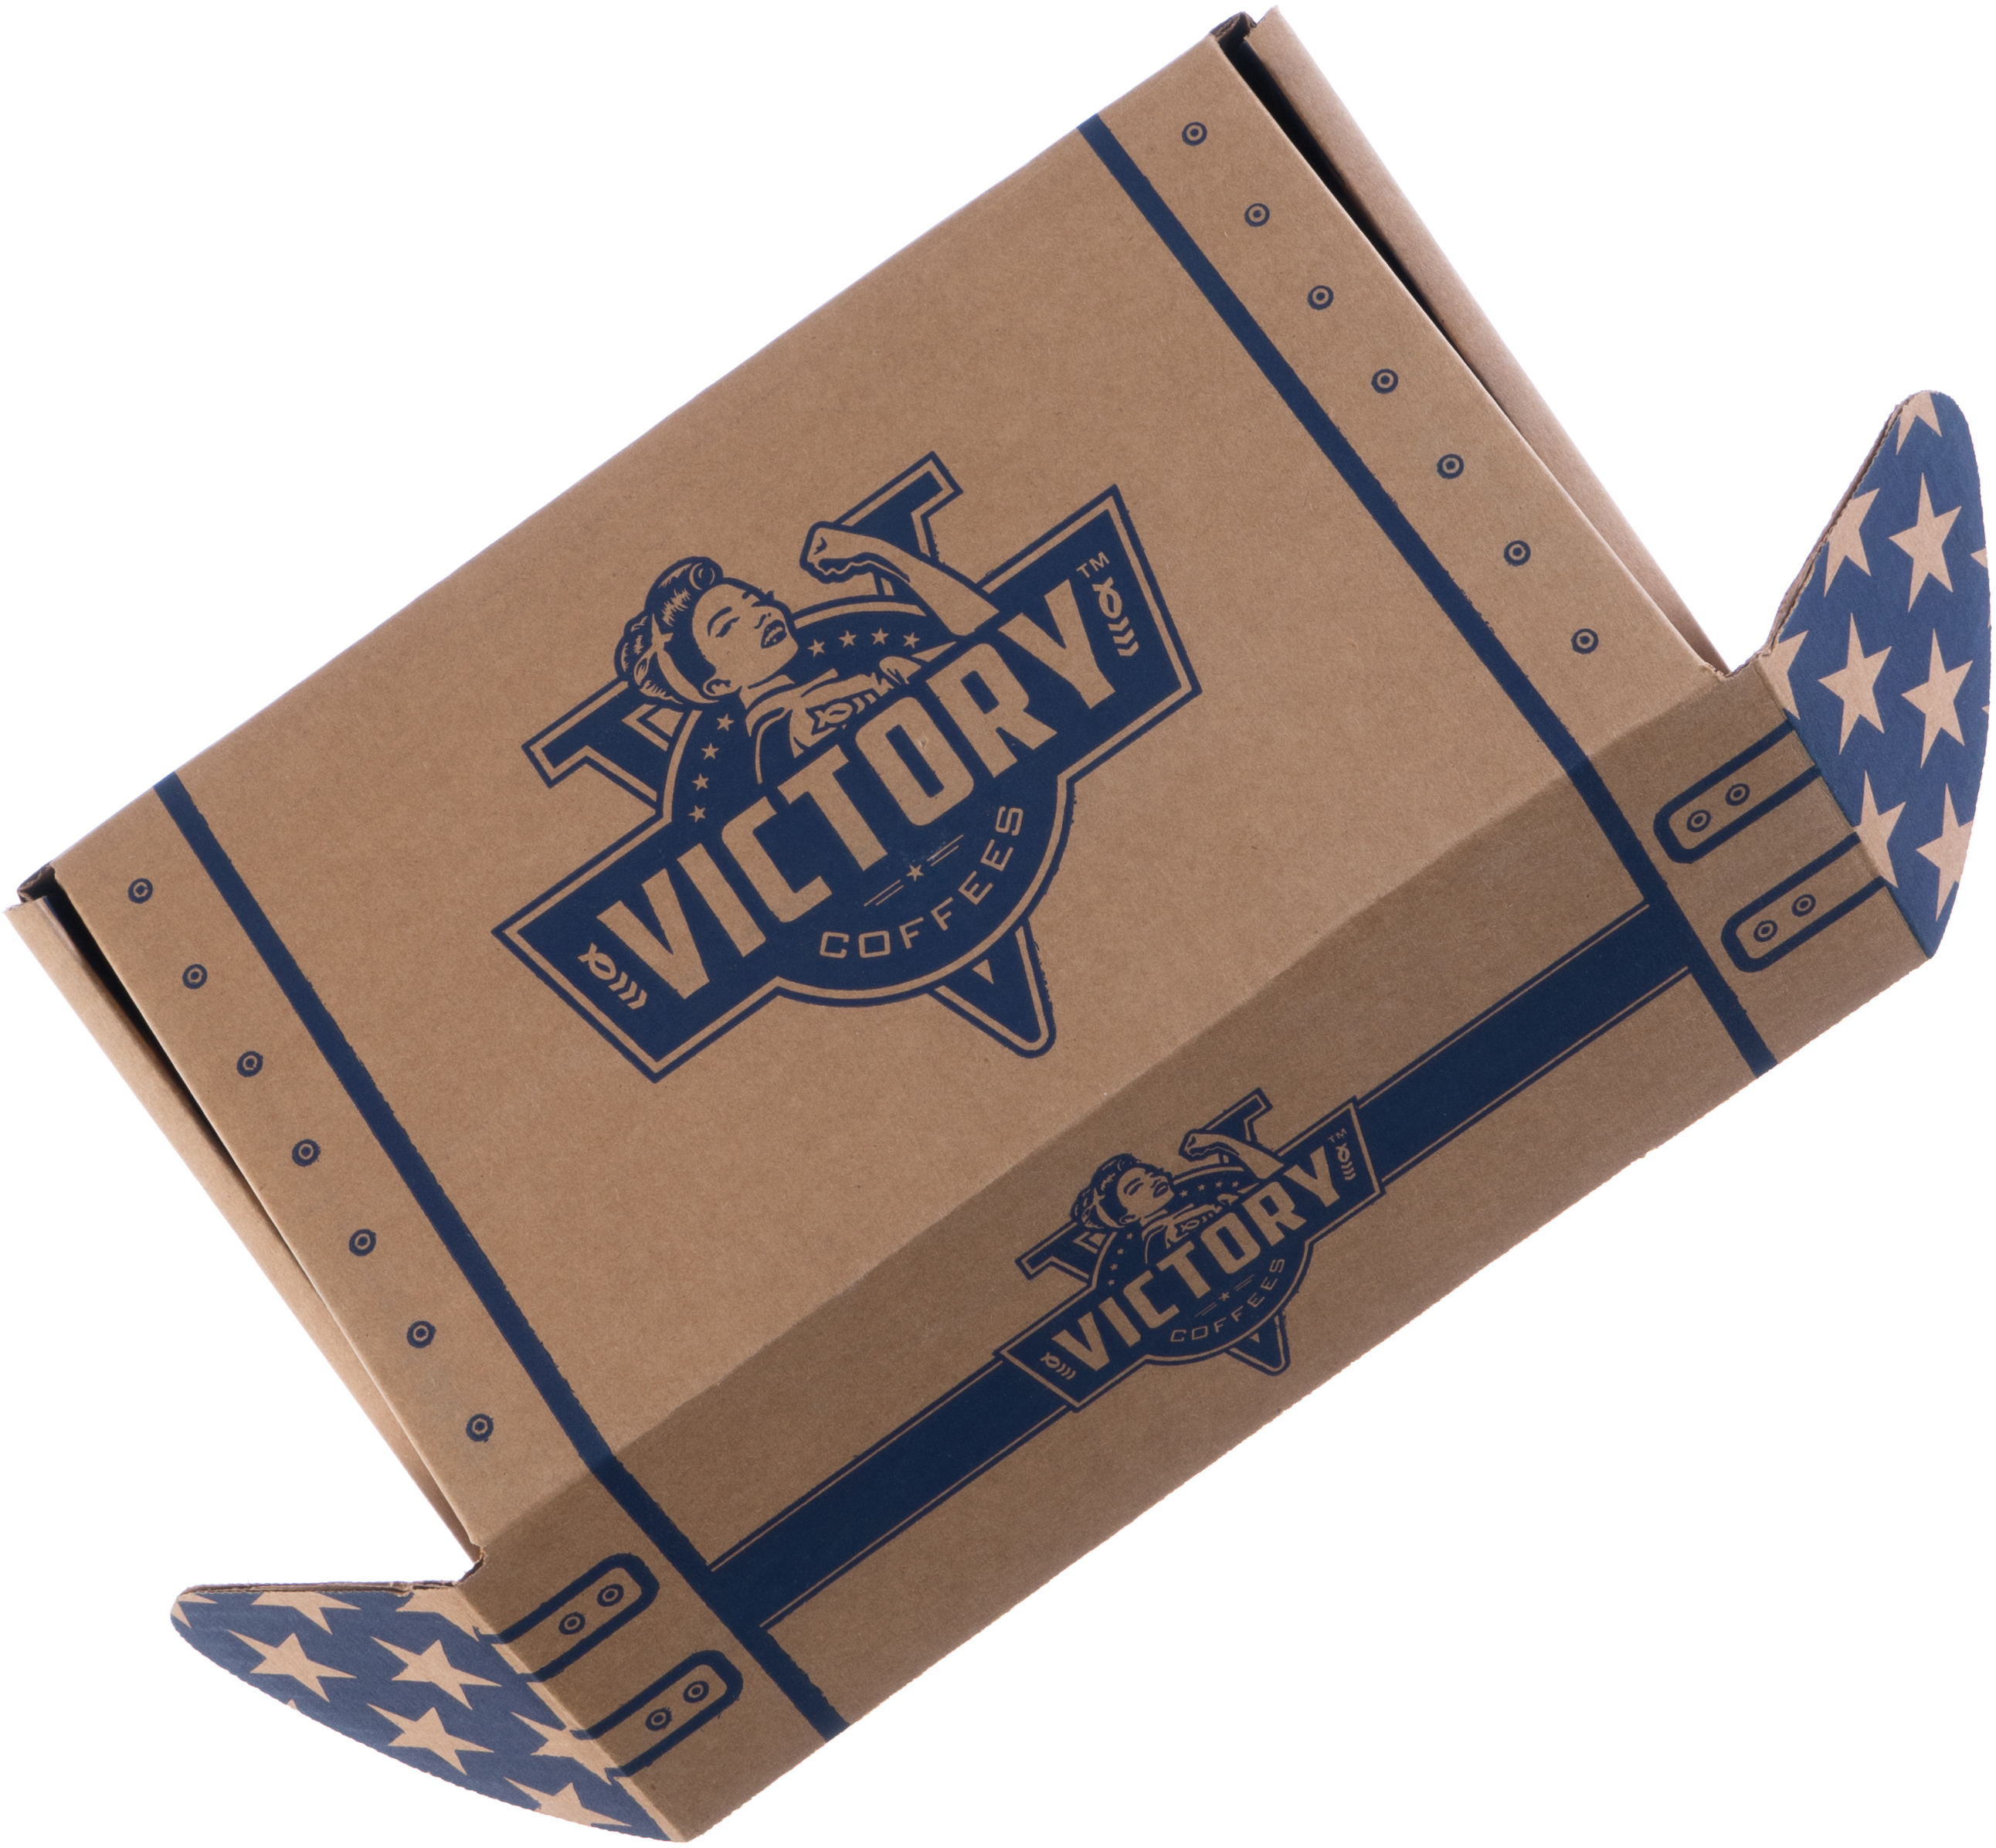 Opening a Victory Coffees shipping box